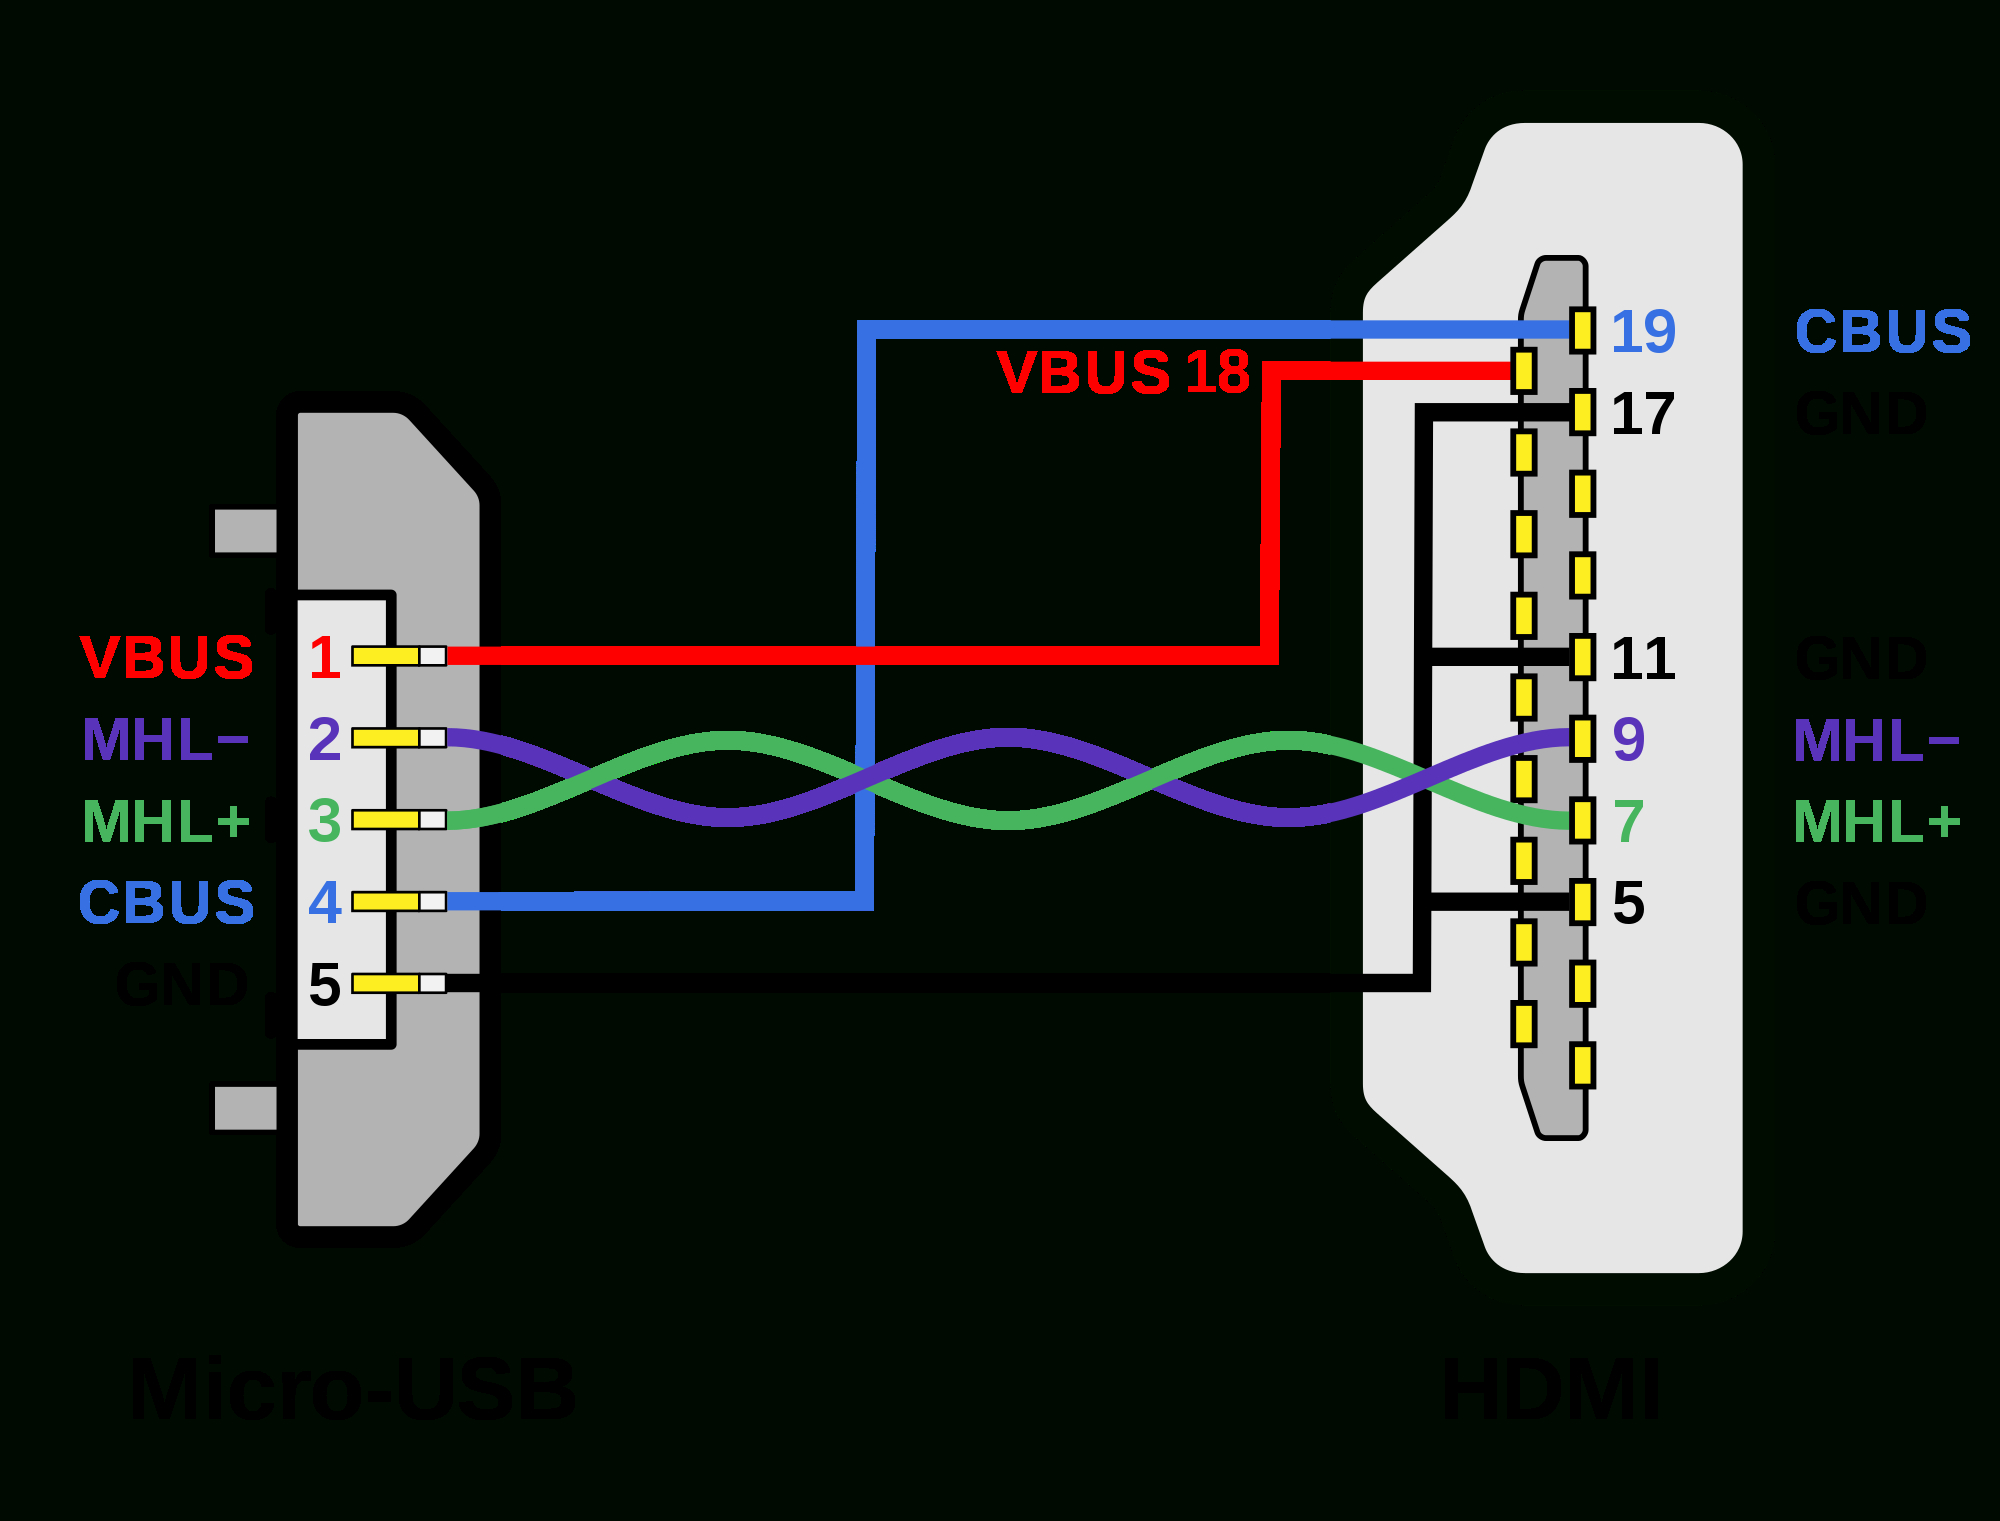 File:mhl Micro-Usb - Hdmi Wiring Diagram.svg - Wikimedia Commons - Wiring Diagram For Micro Usb